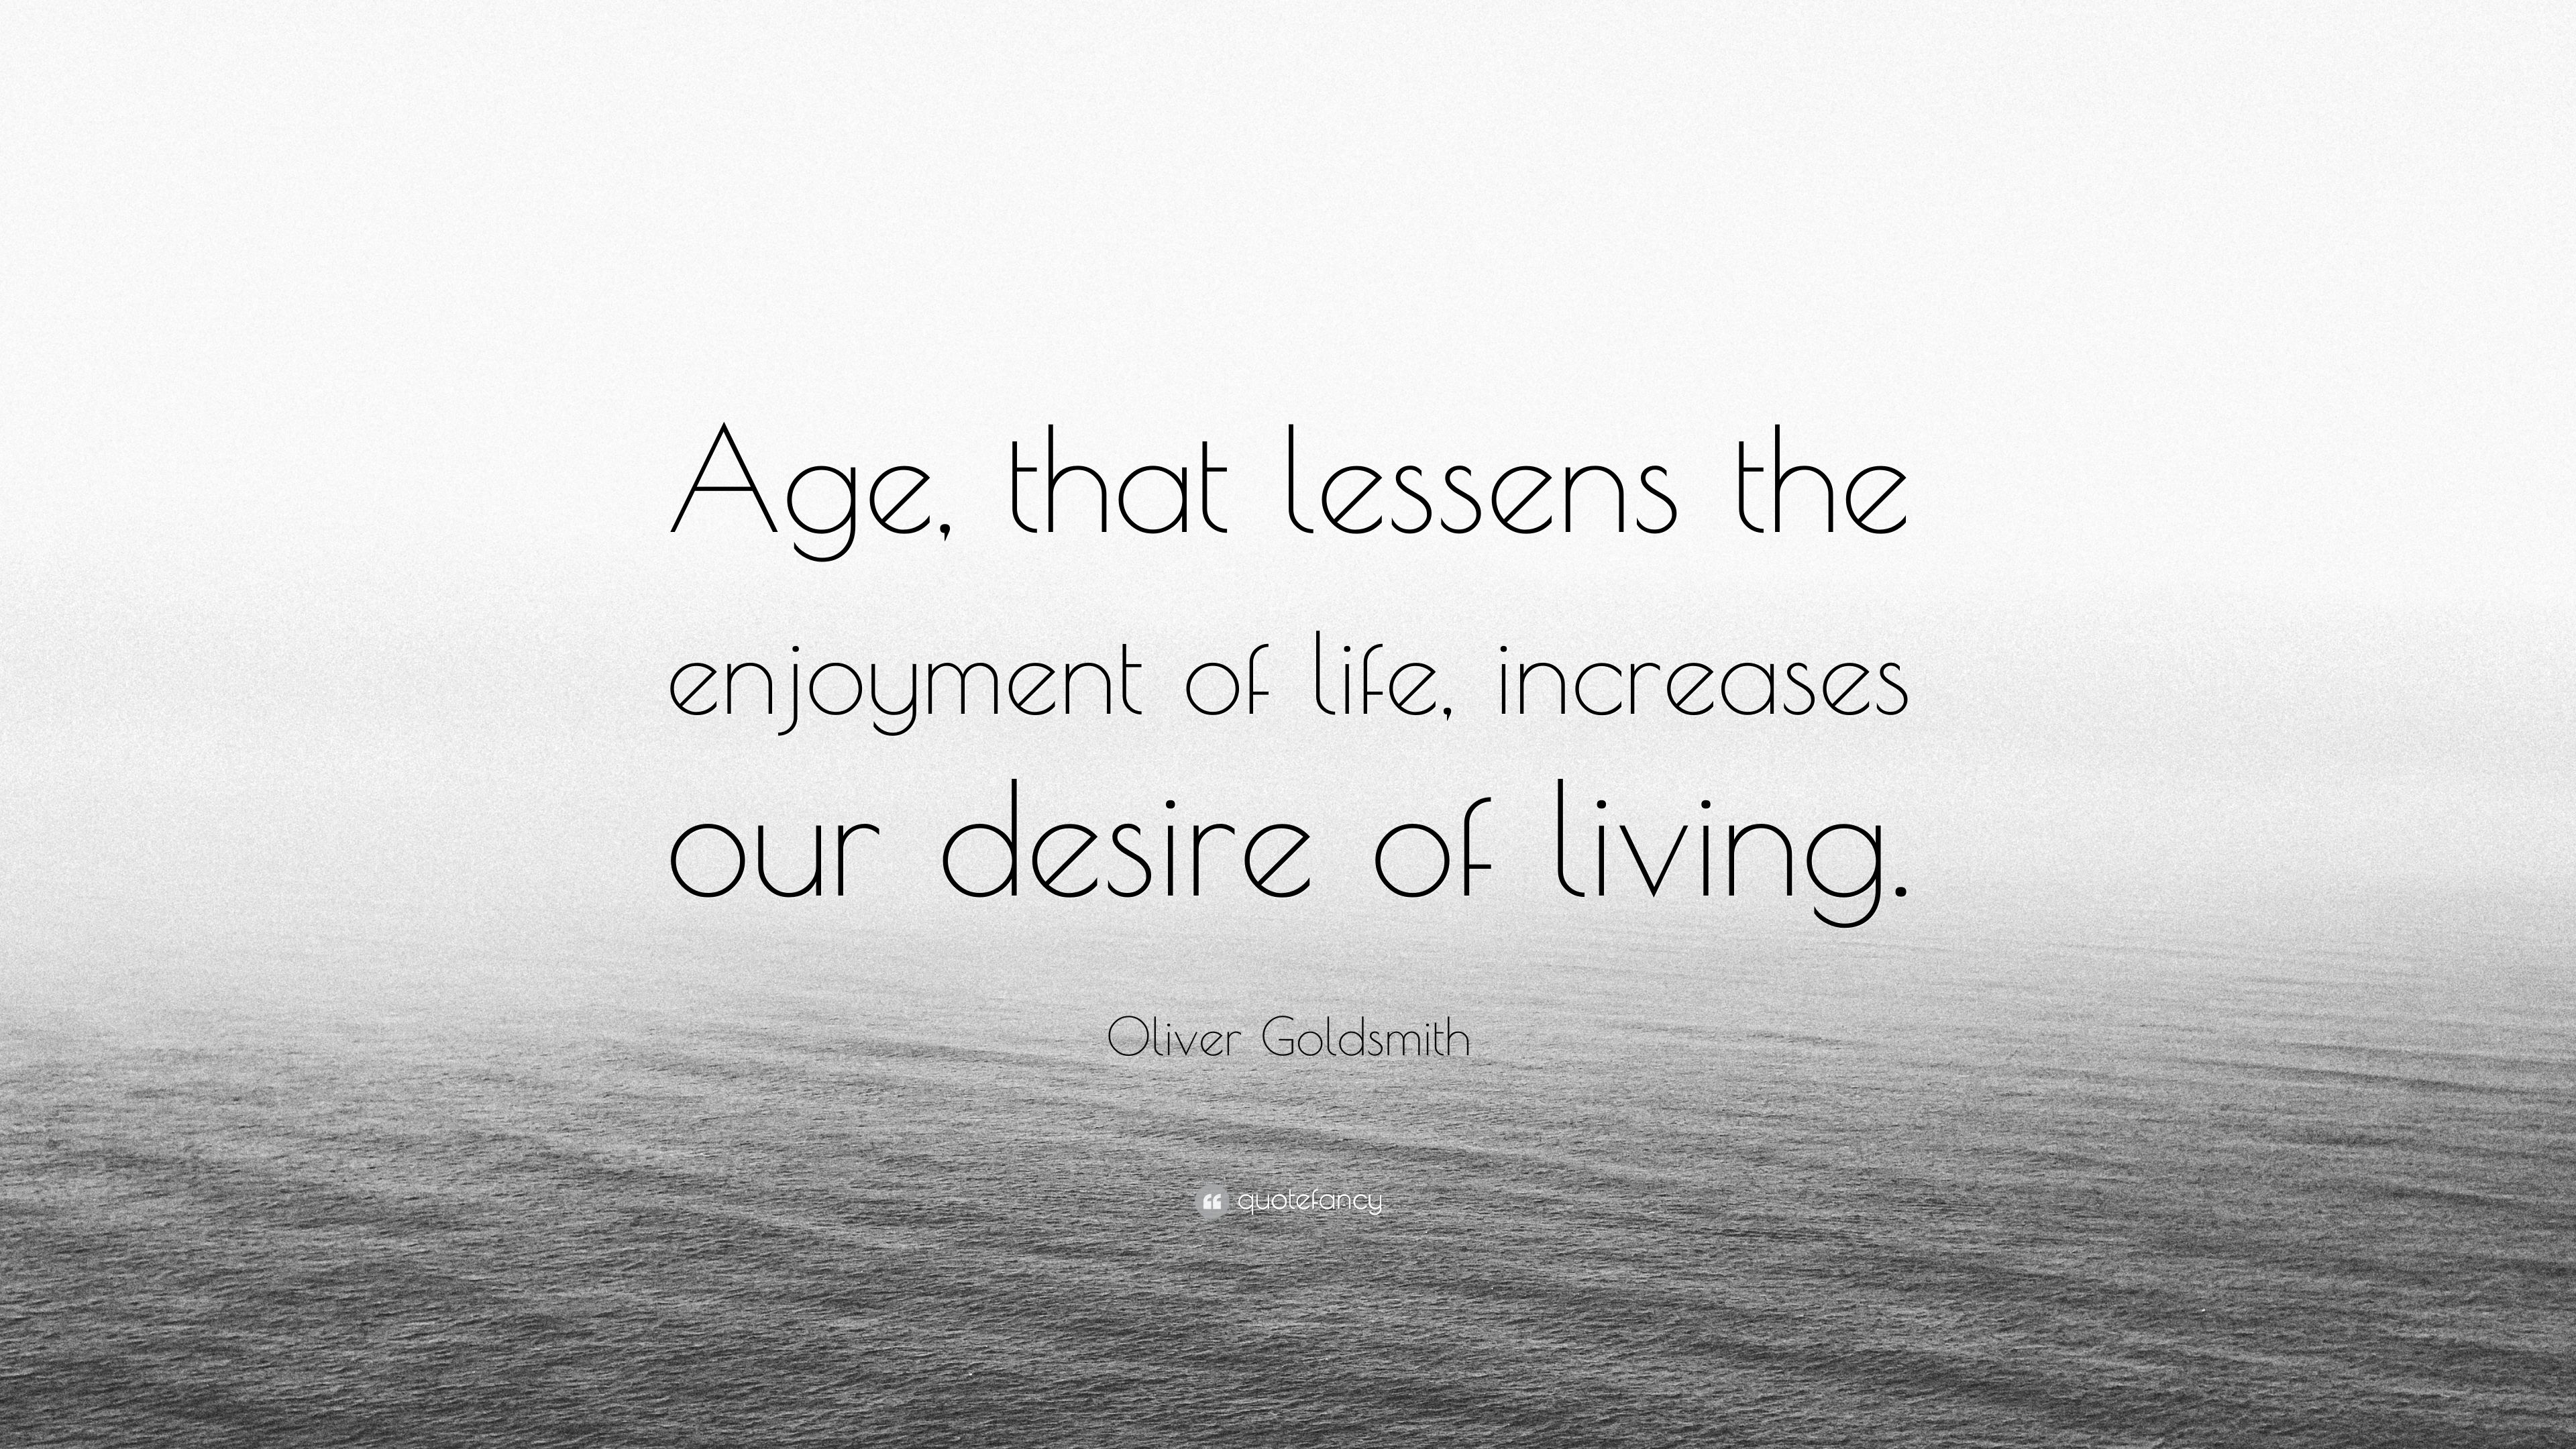 Oliver Goldsmith Quote Age That Lessens The Enjoyment Of Life Increases Our Desire Of Living 7 Wallpapers Quotefancy